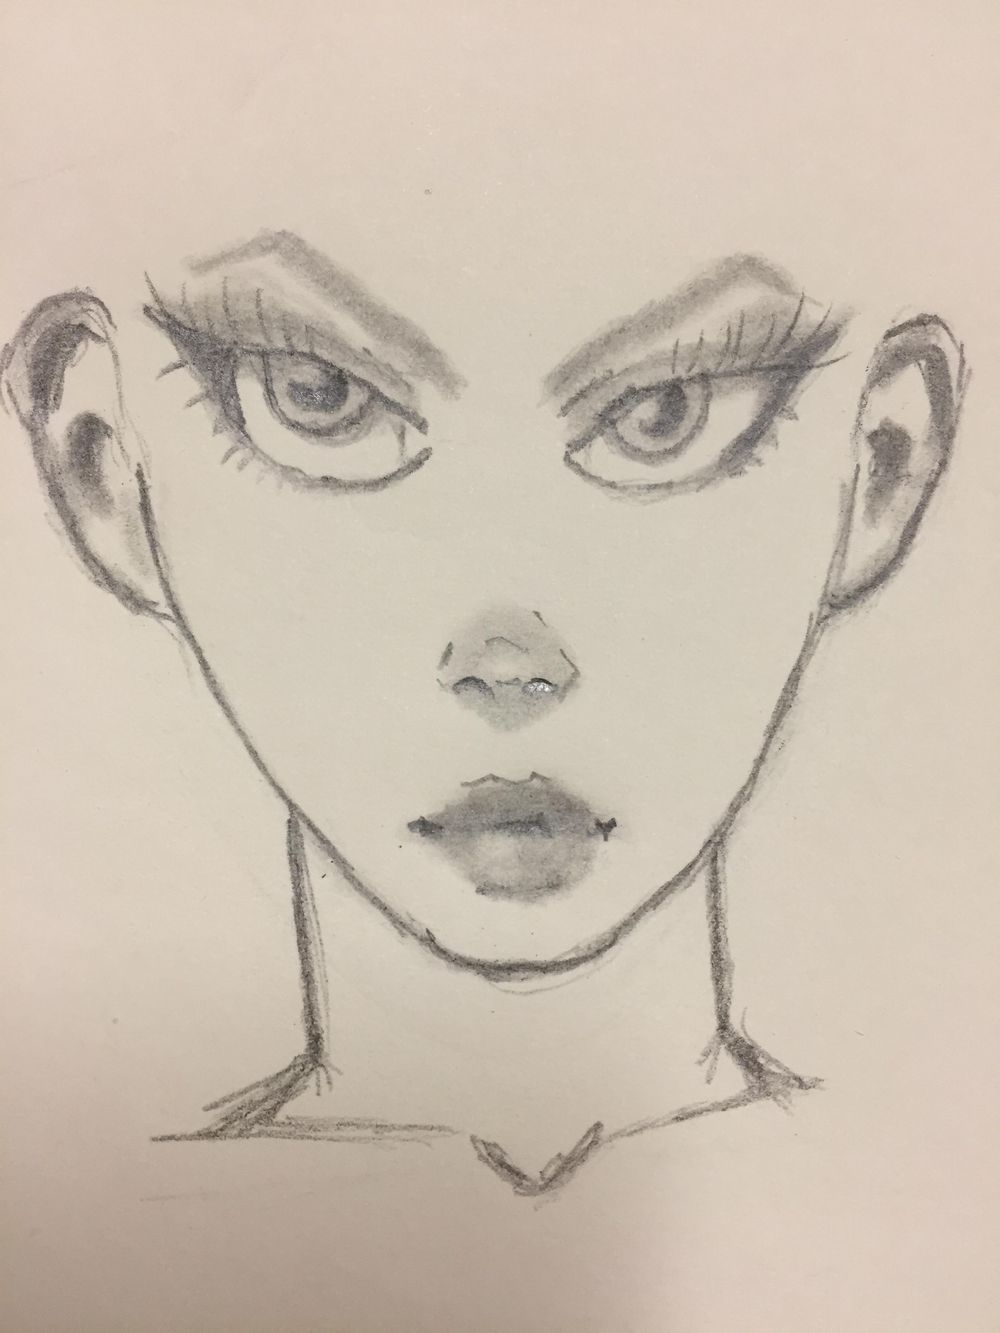 female char - image 6 - student project